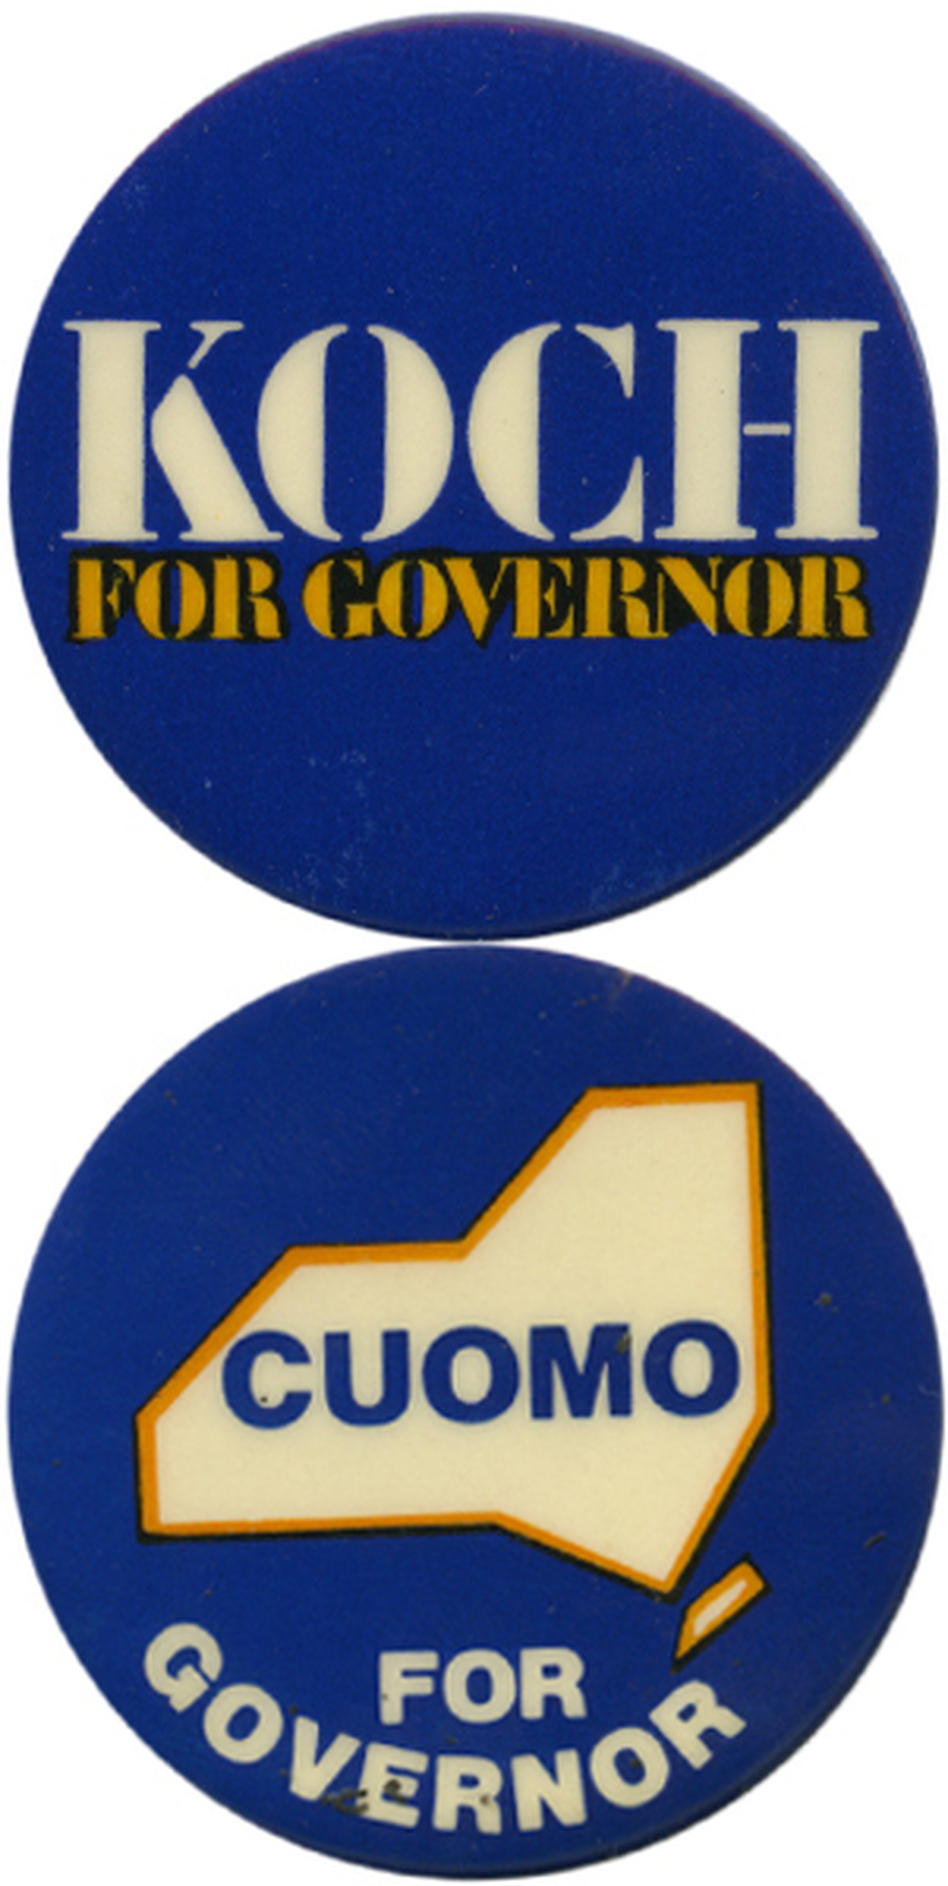 Koch's big mistake: seeking the governorship in 1982. (Ken Rudin collection )